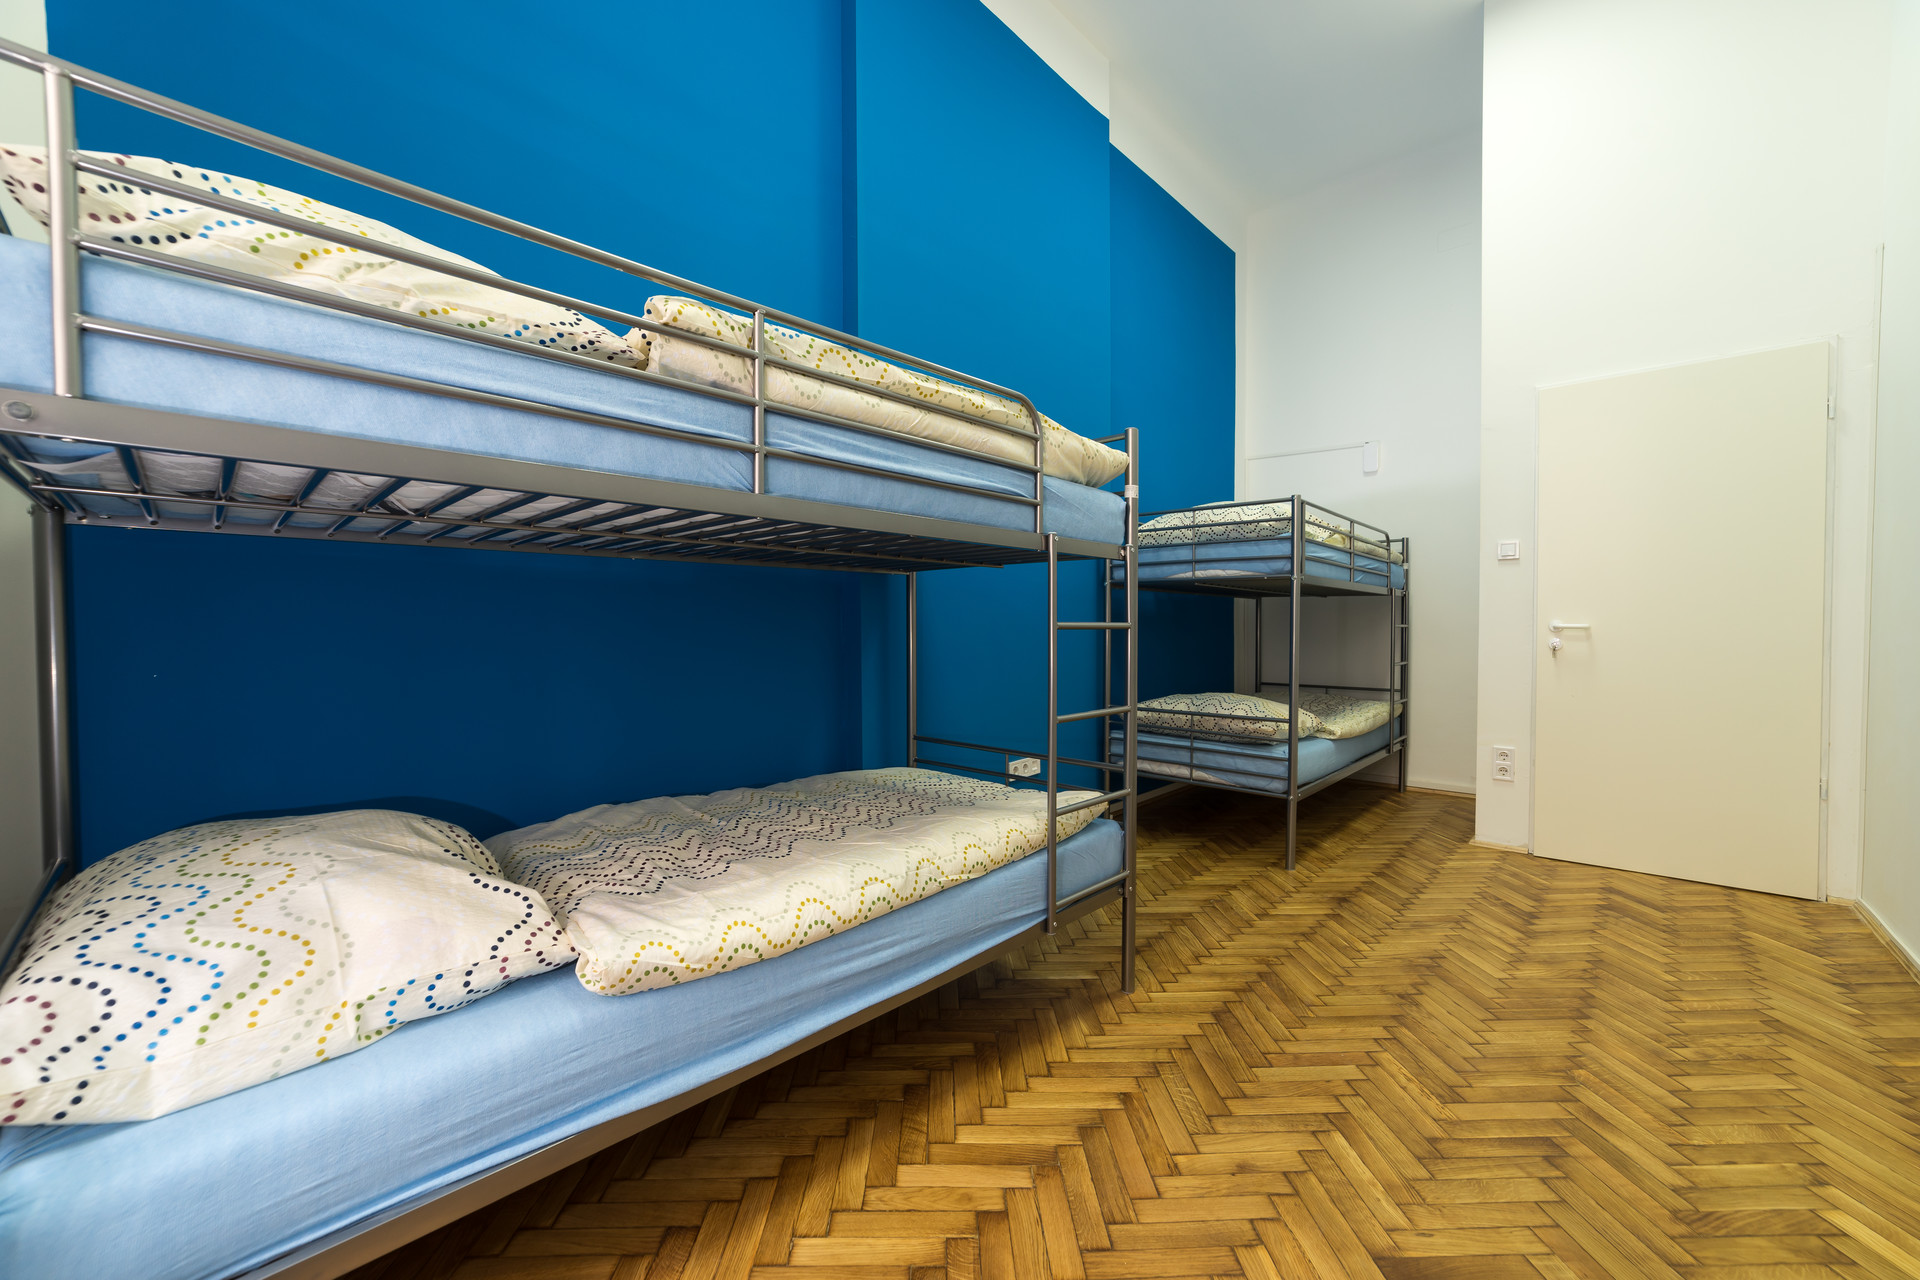 Bed In 4 People Shared Room For Students Only Females Budapest District 6 Room For Rent Budapest